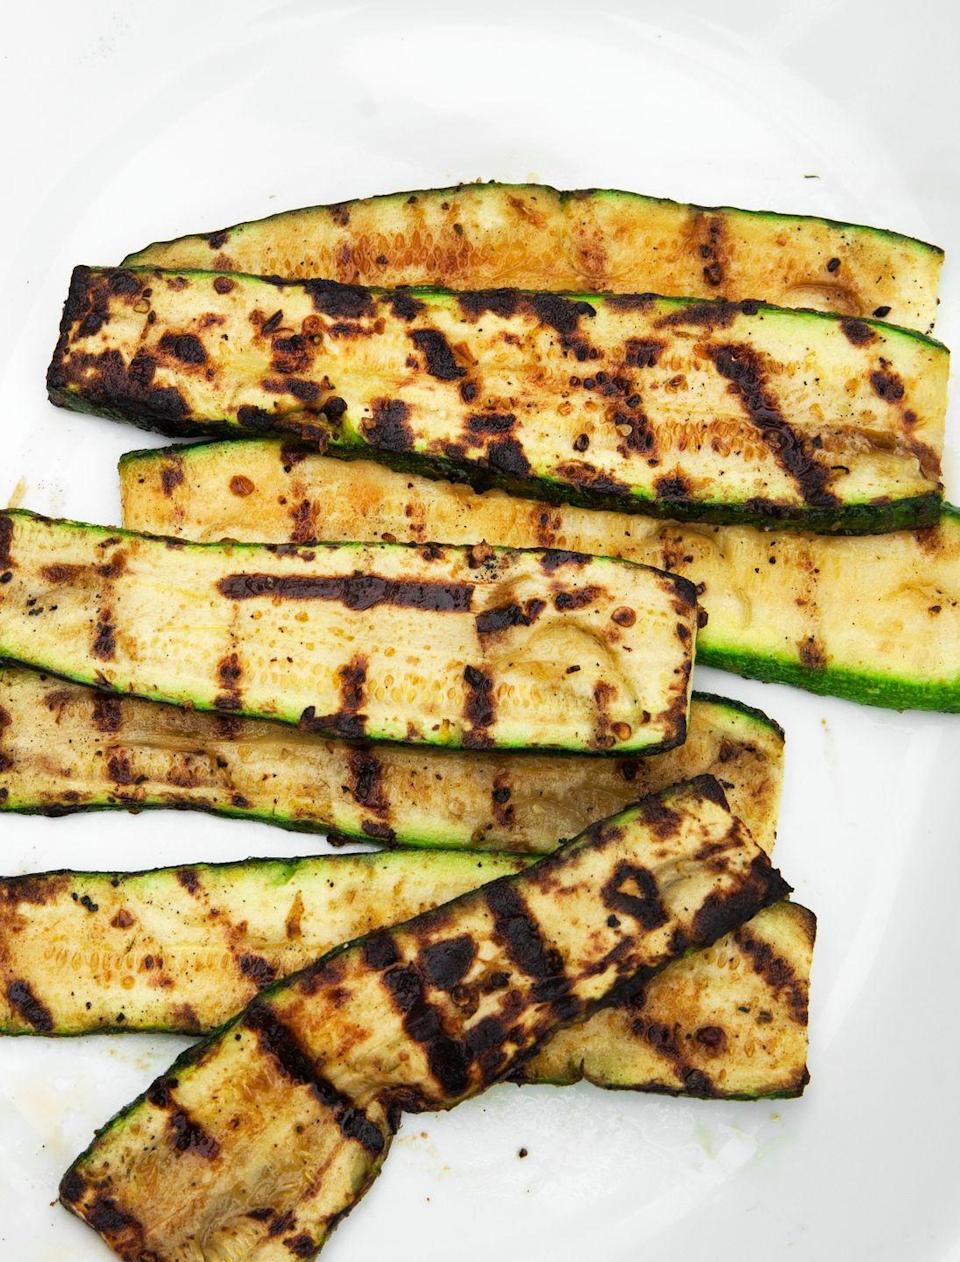 """<p>Here's your healthy, go-to summer side.</p><p>Get the recipe from <a href=""""https://www.delish.com/cooking/recipe-ideas/recipes/a53484/grilled-zucchini-recipe/"""" rel=""""nofollow noopener"""" target=""""_blank"""" data-ylk=""""slk:Delish"""" class=""""link rapid-noclick-resp"""">Delish</a>.</p>"""